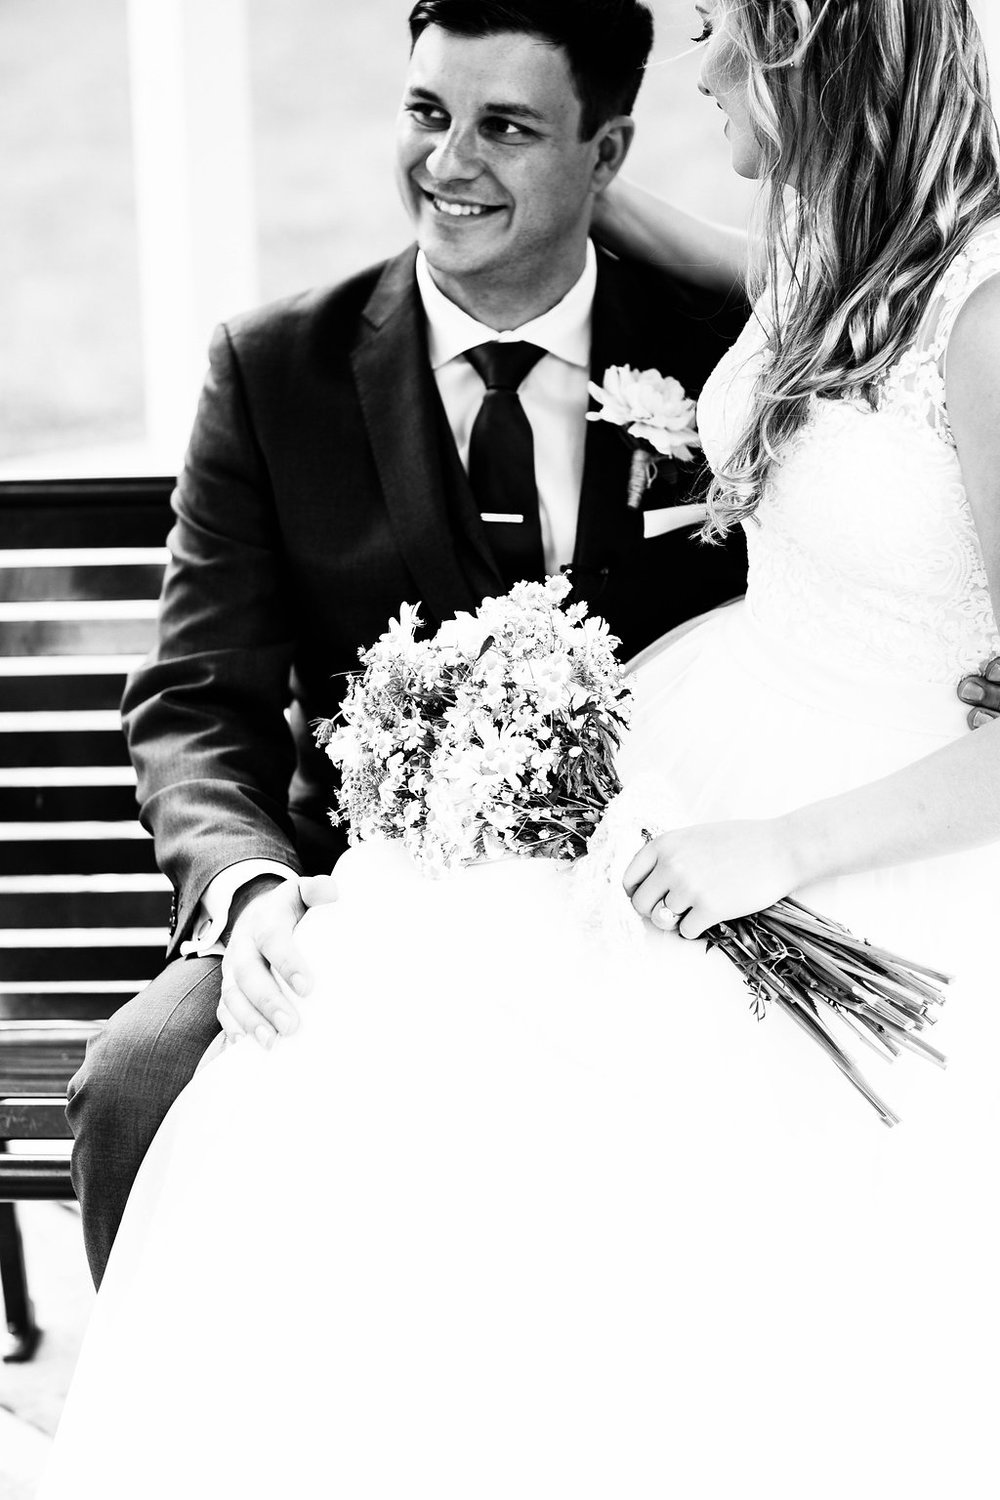 Nicole+Joe_Wedding_Seattle_McMennaminsBothell_6242015_68.jpg